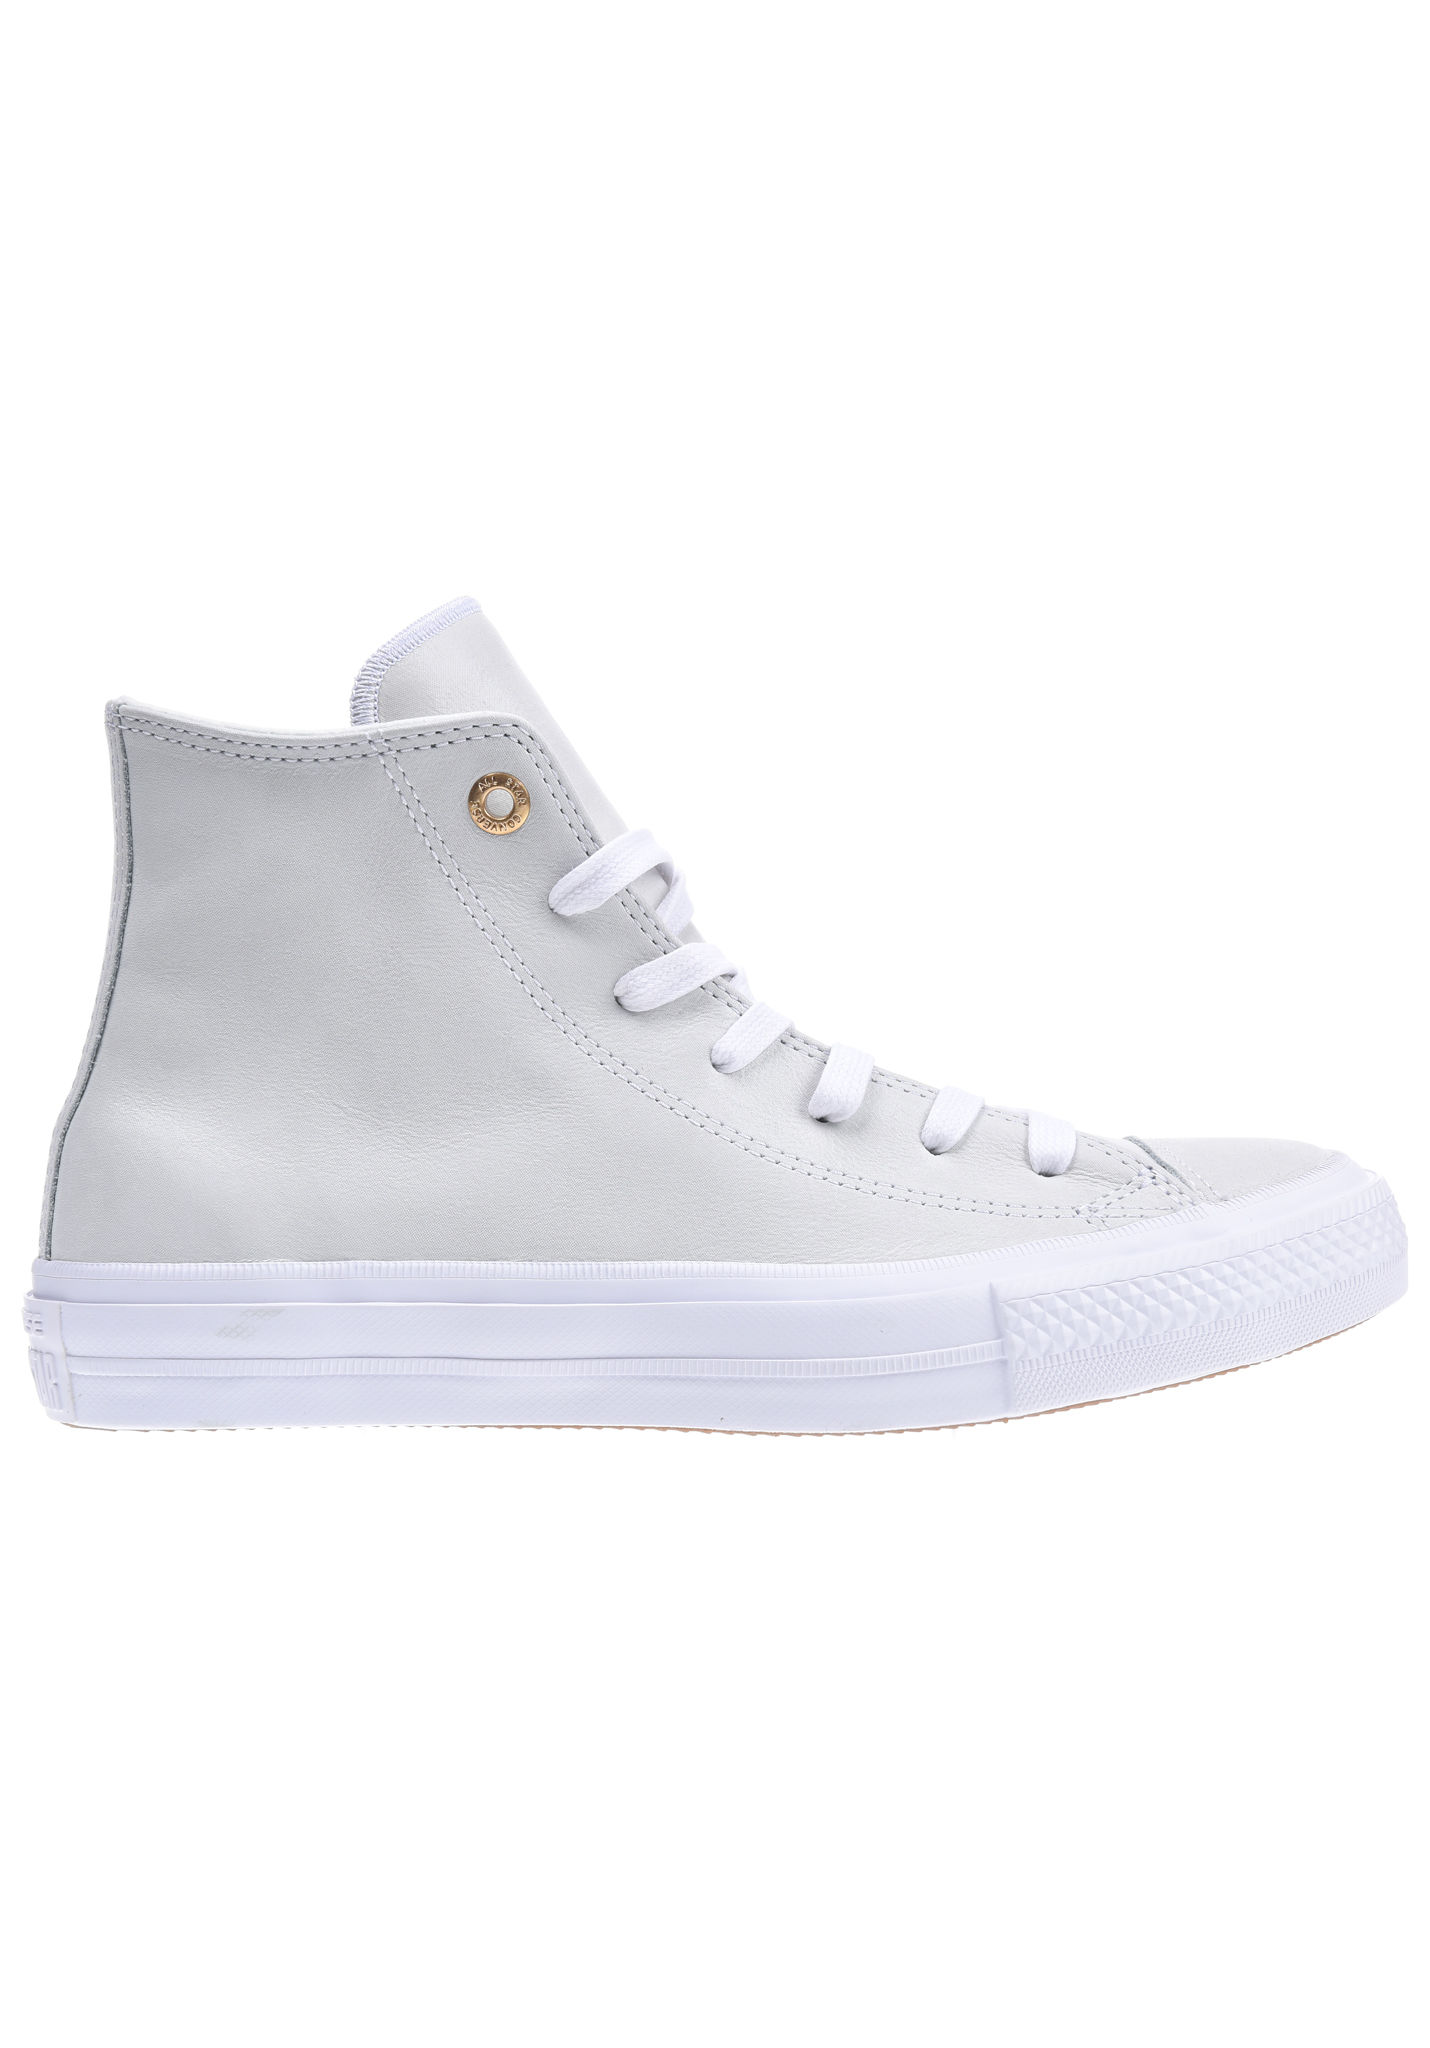 20fb05e98 Converse Chuck Taylor All Star II Hi - Sneakers for Women - Beige - Planet  Sports